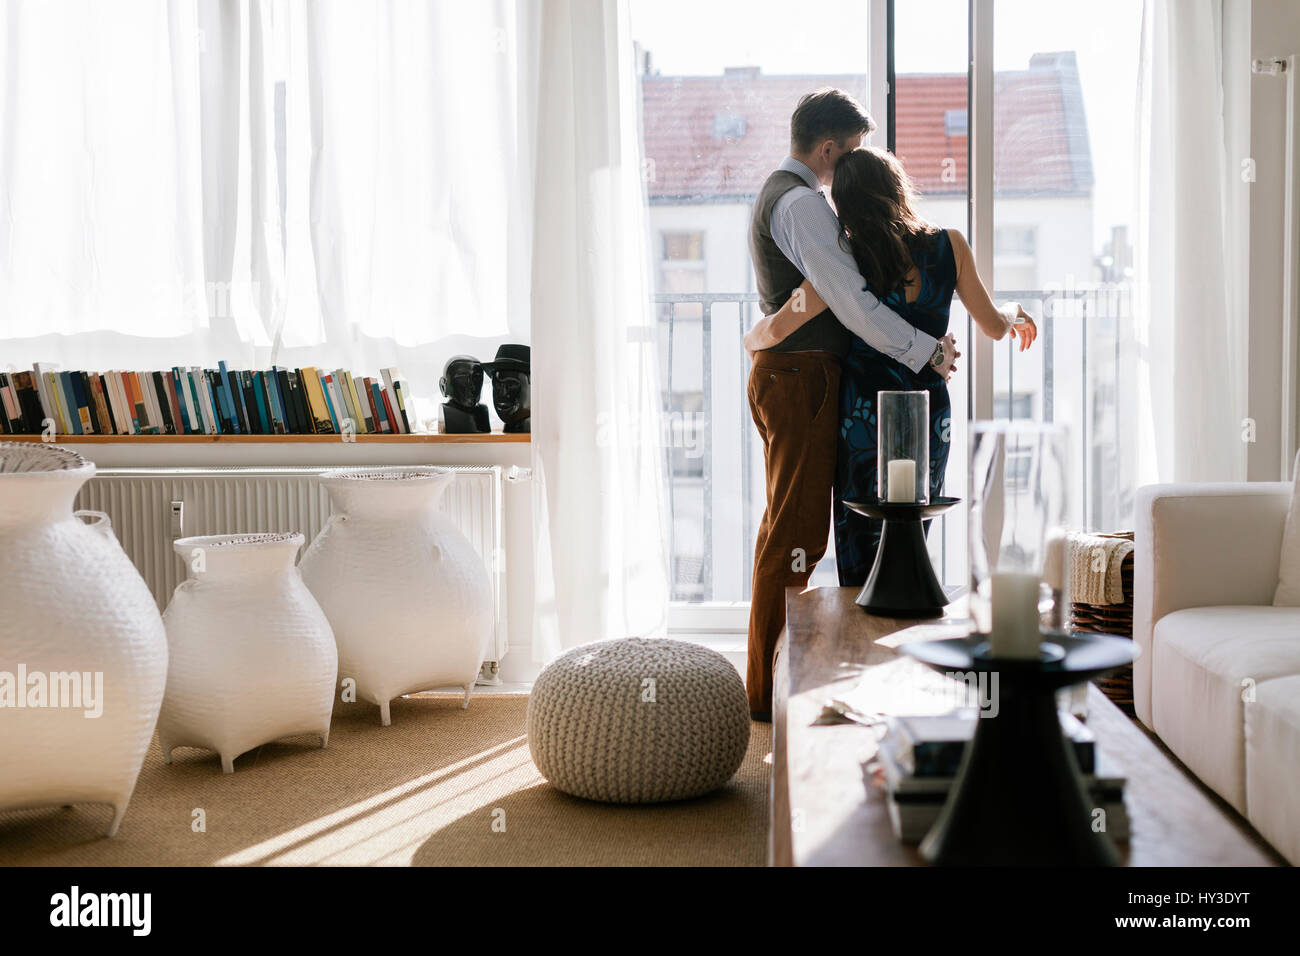 Germany, Couple hugging by window in living room - Stock Image